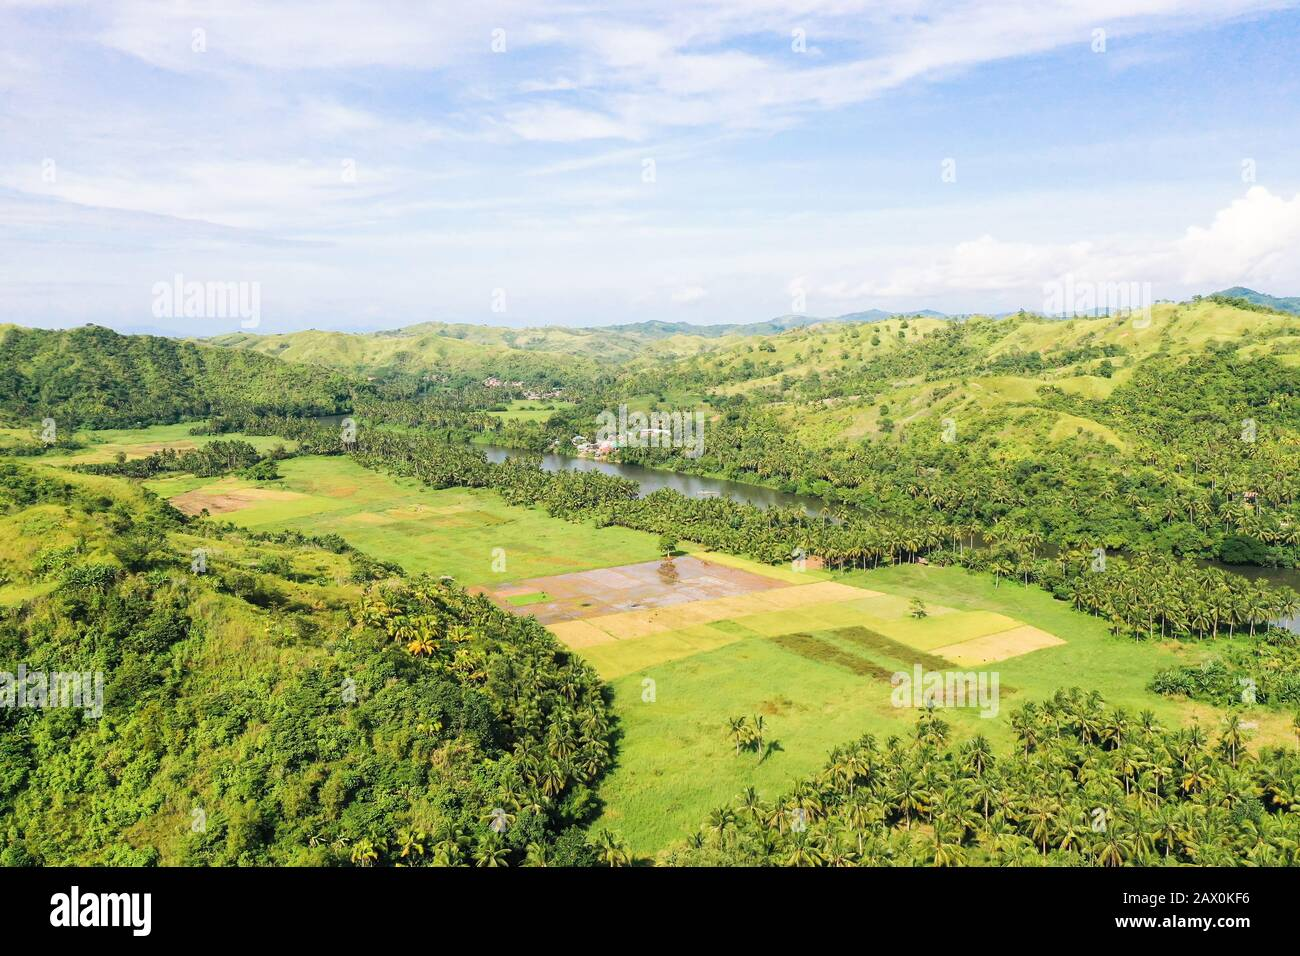 River and green hills. Beautiful natural scenery of river in southeast Asia. Countryside on a large tropical island. Small village on the green hills by the river. The nature of the Philippines. Stock Photo